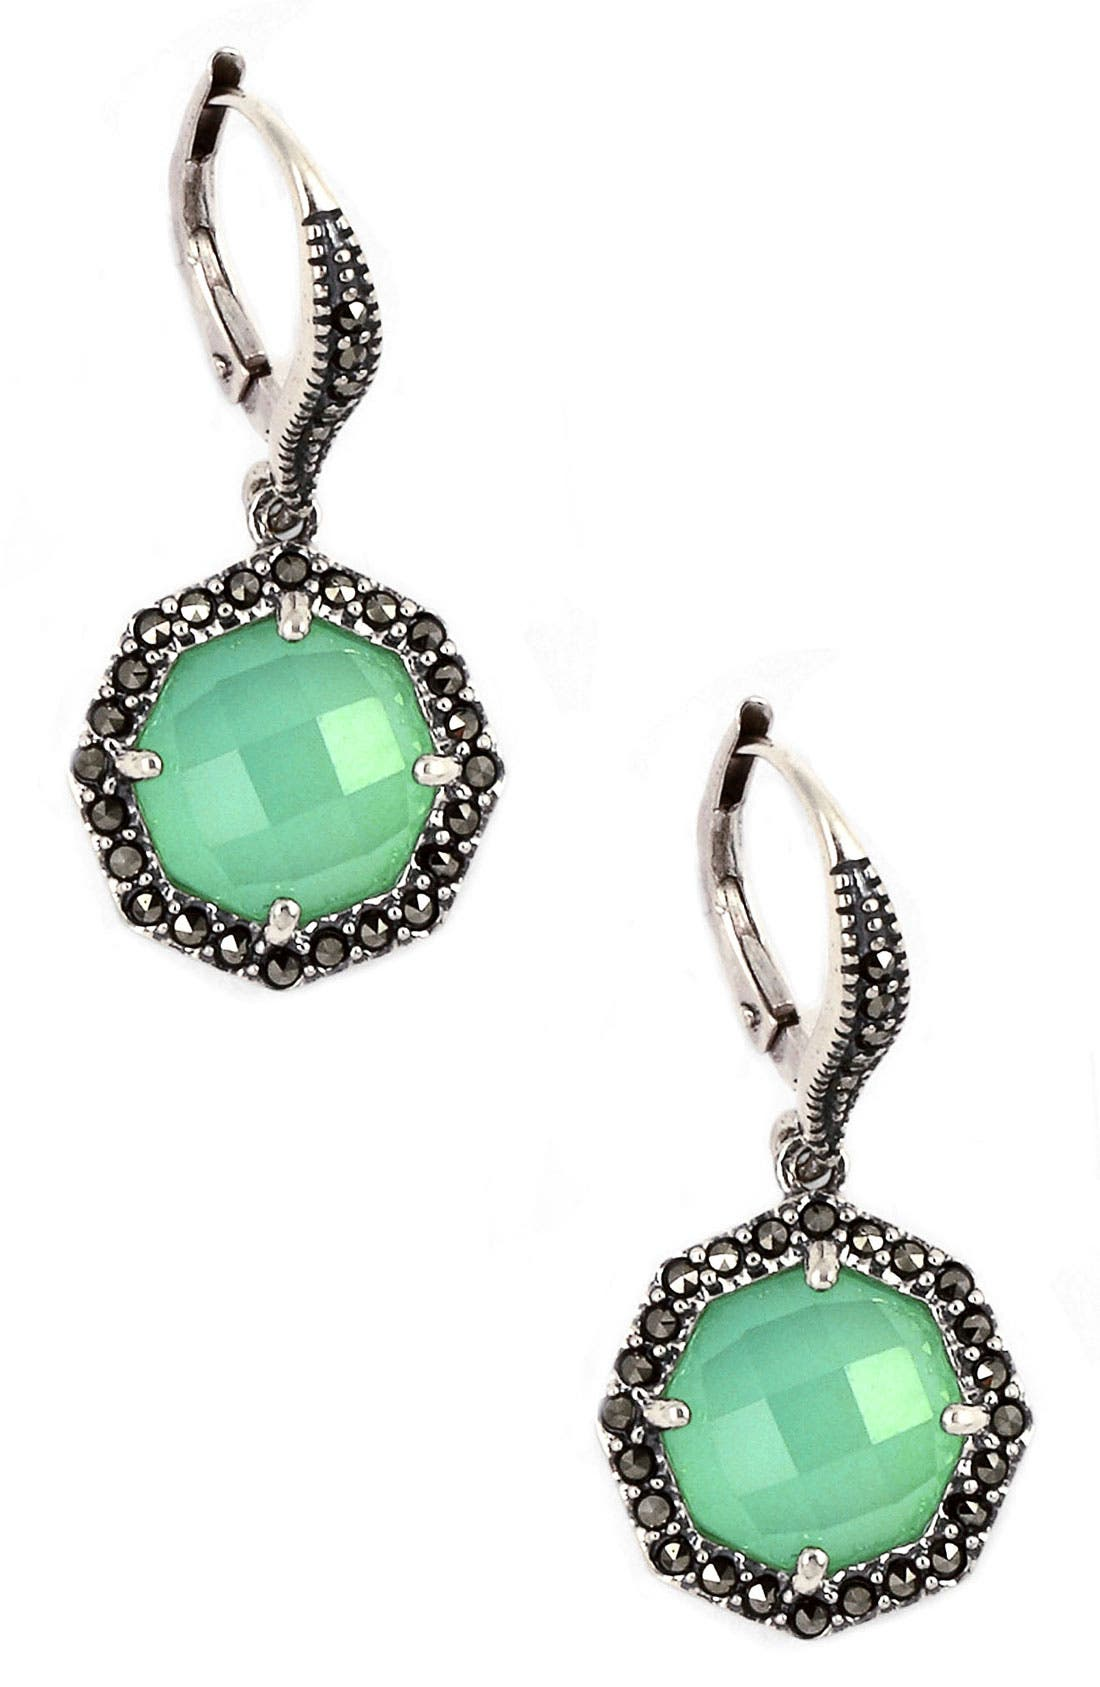 Main Image - Judith Jack 'Maldives' Small Stone Drop Earrings